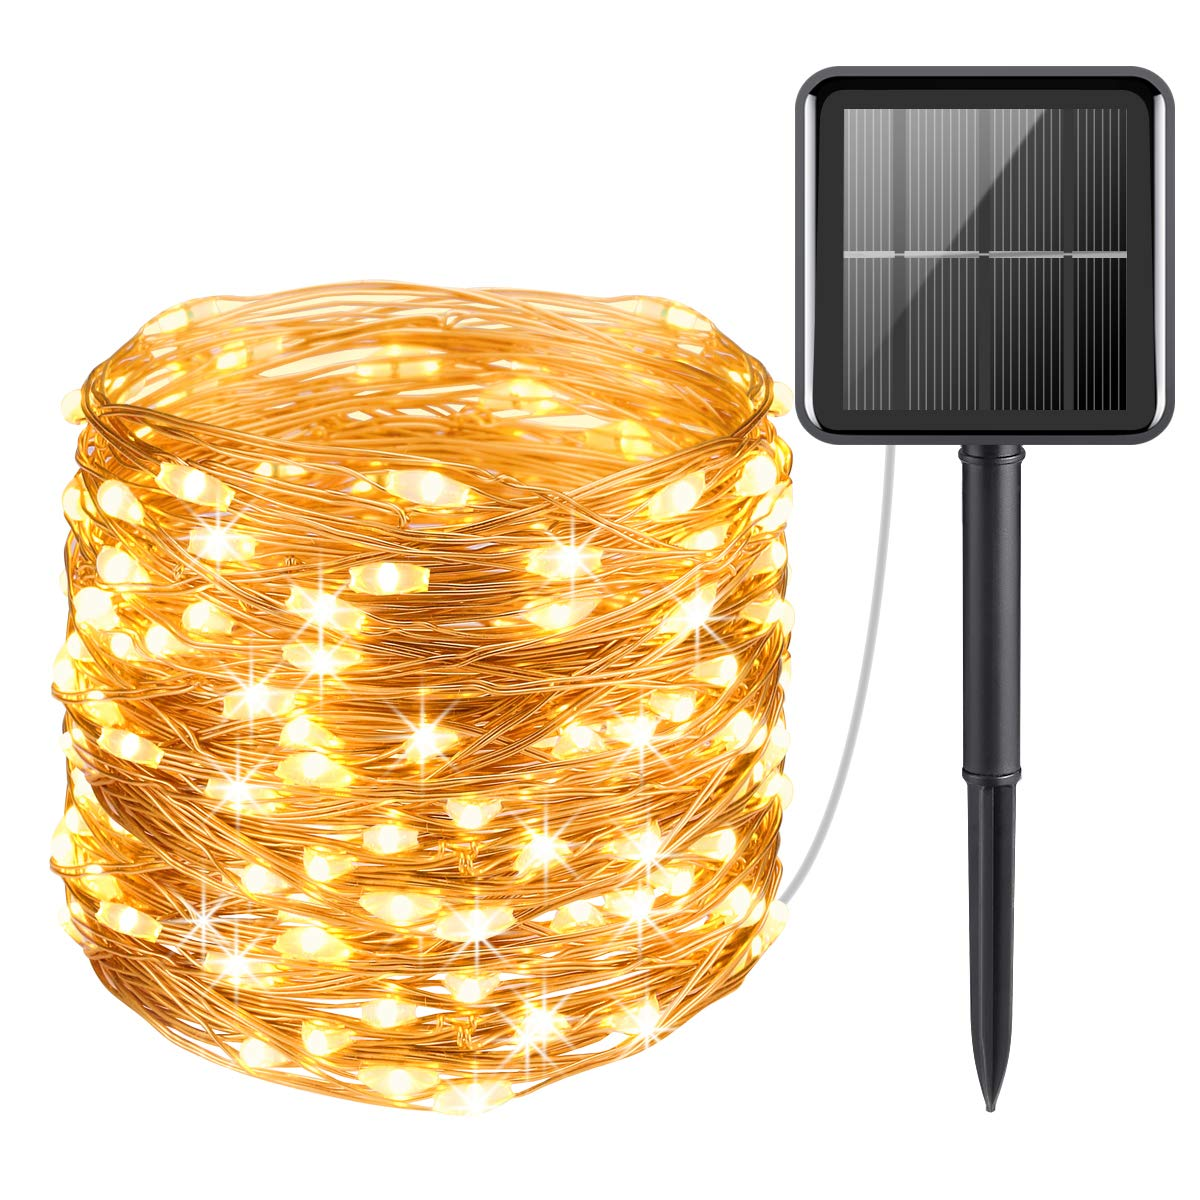 Solar Powered 100 Led String Light Garden Path Decor Lamp Outdoor Waterproof String Lights Fairy Lights Lamps Lighting Ceiling Fans